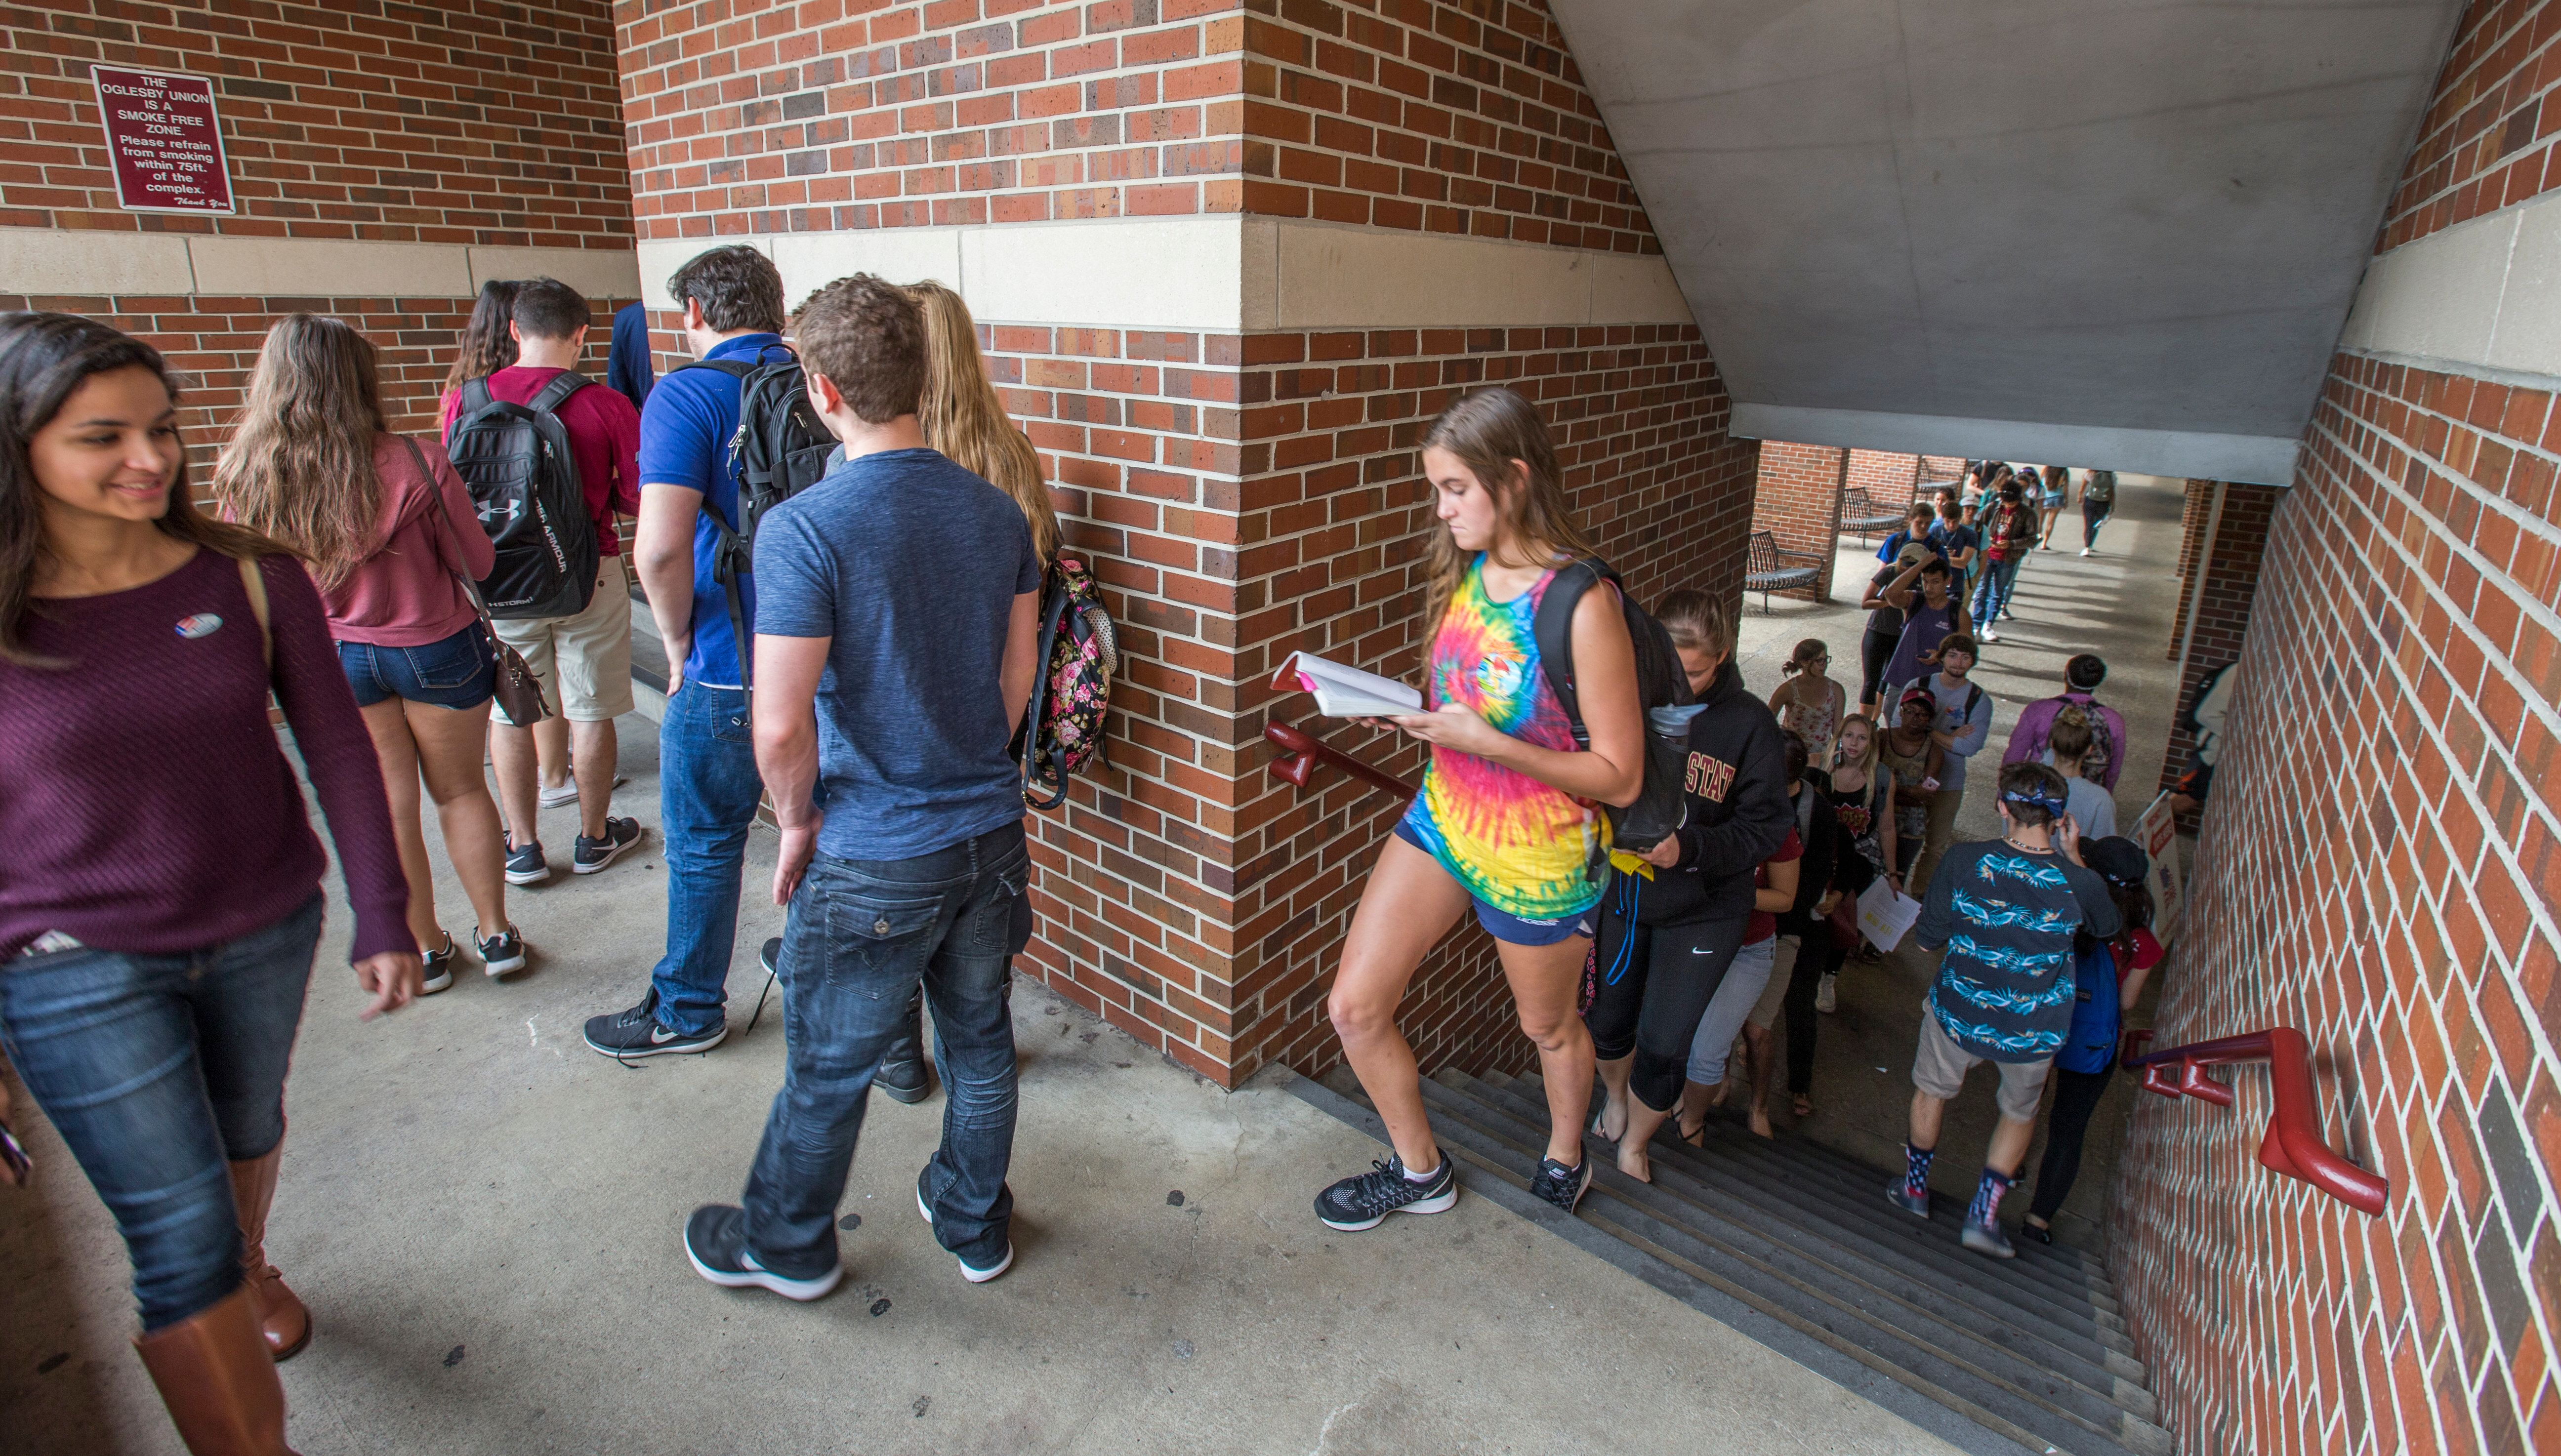 TALLAHASSEE, FL - NOVEMBER 08:  Florida State University student line up to vote at the Oglesby Union on November 8, 2016 in Tallahassee, Florida, United States. Americans across the nation are picking their choice for the next president of the United States.  (Photo by Mark Wallheiser/Getty Images)